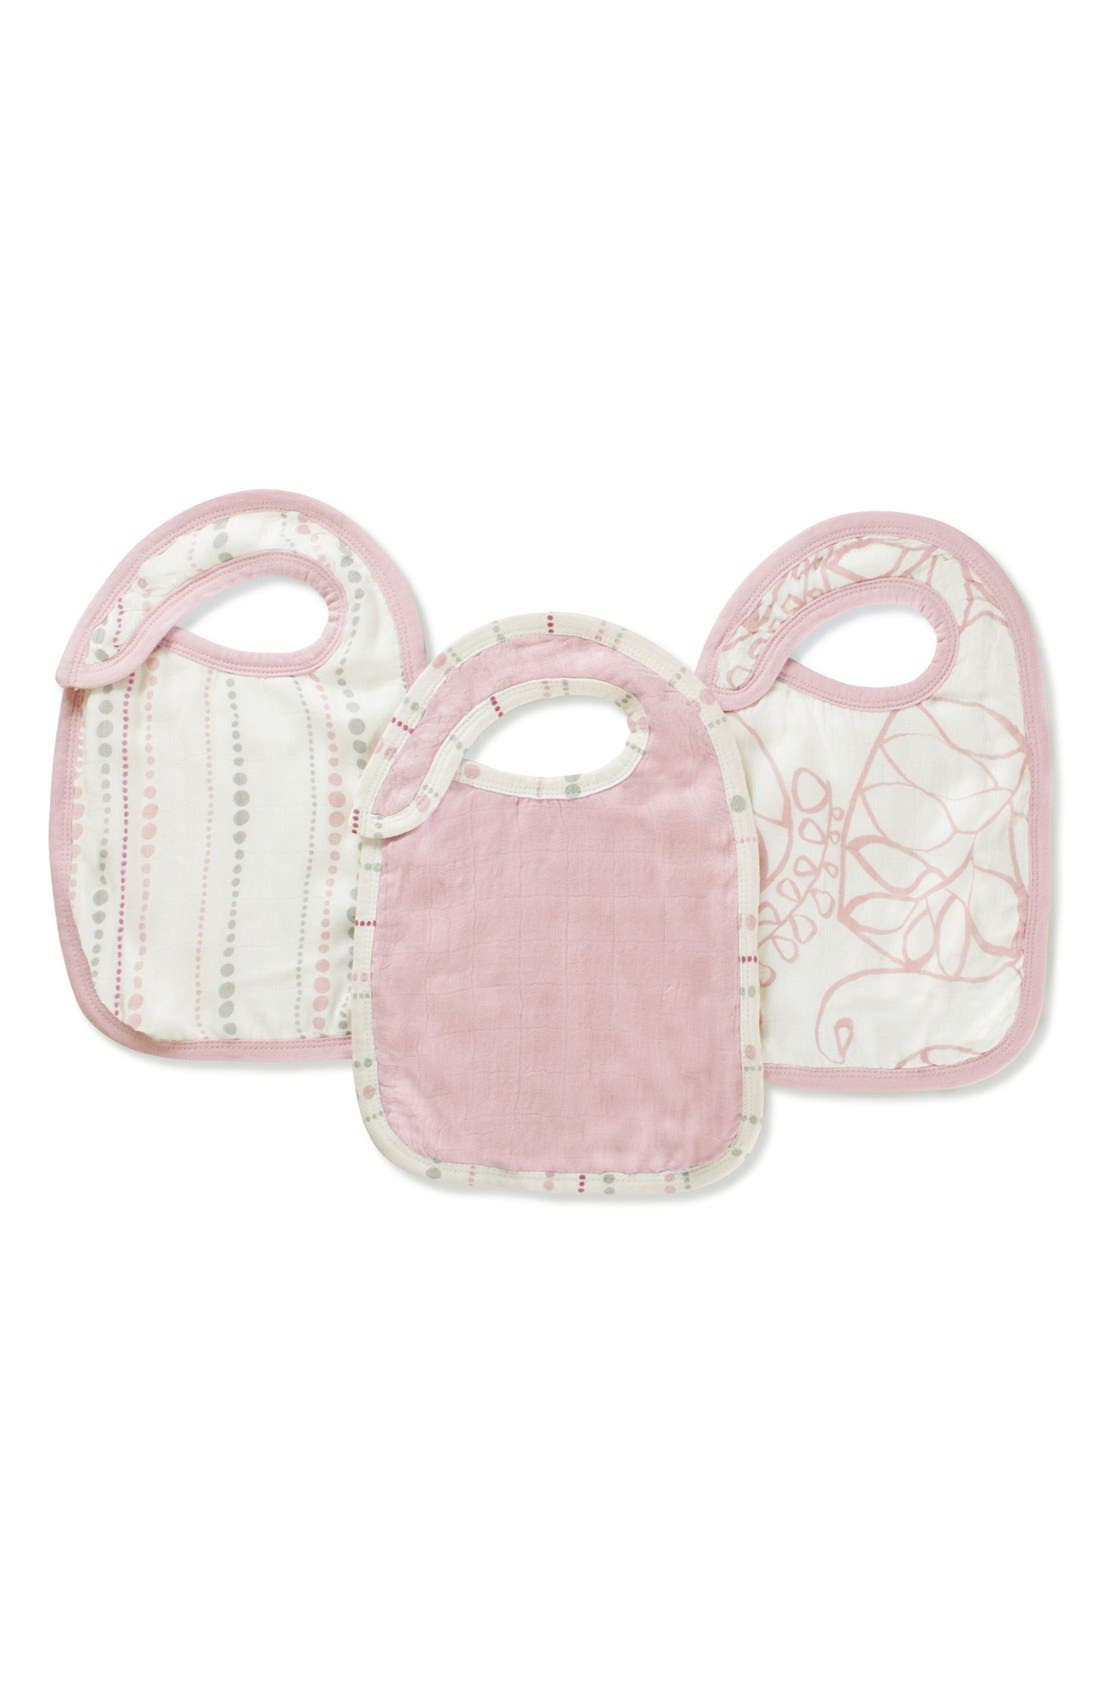 3-Pack Snap Bibs,                             Main thumbnail 1, color,                             Tranquility